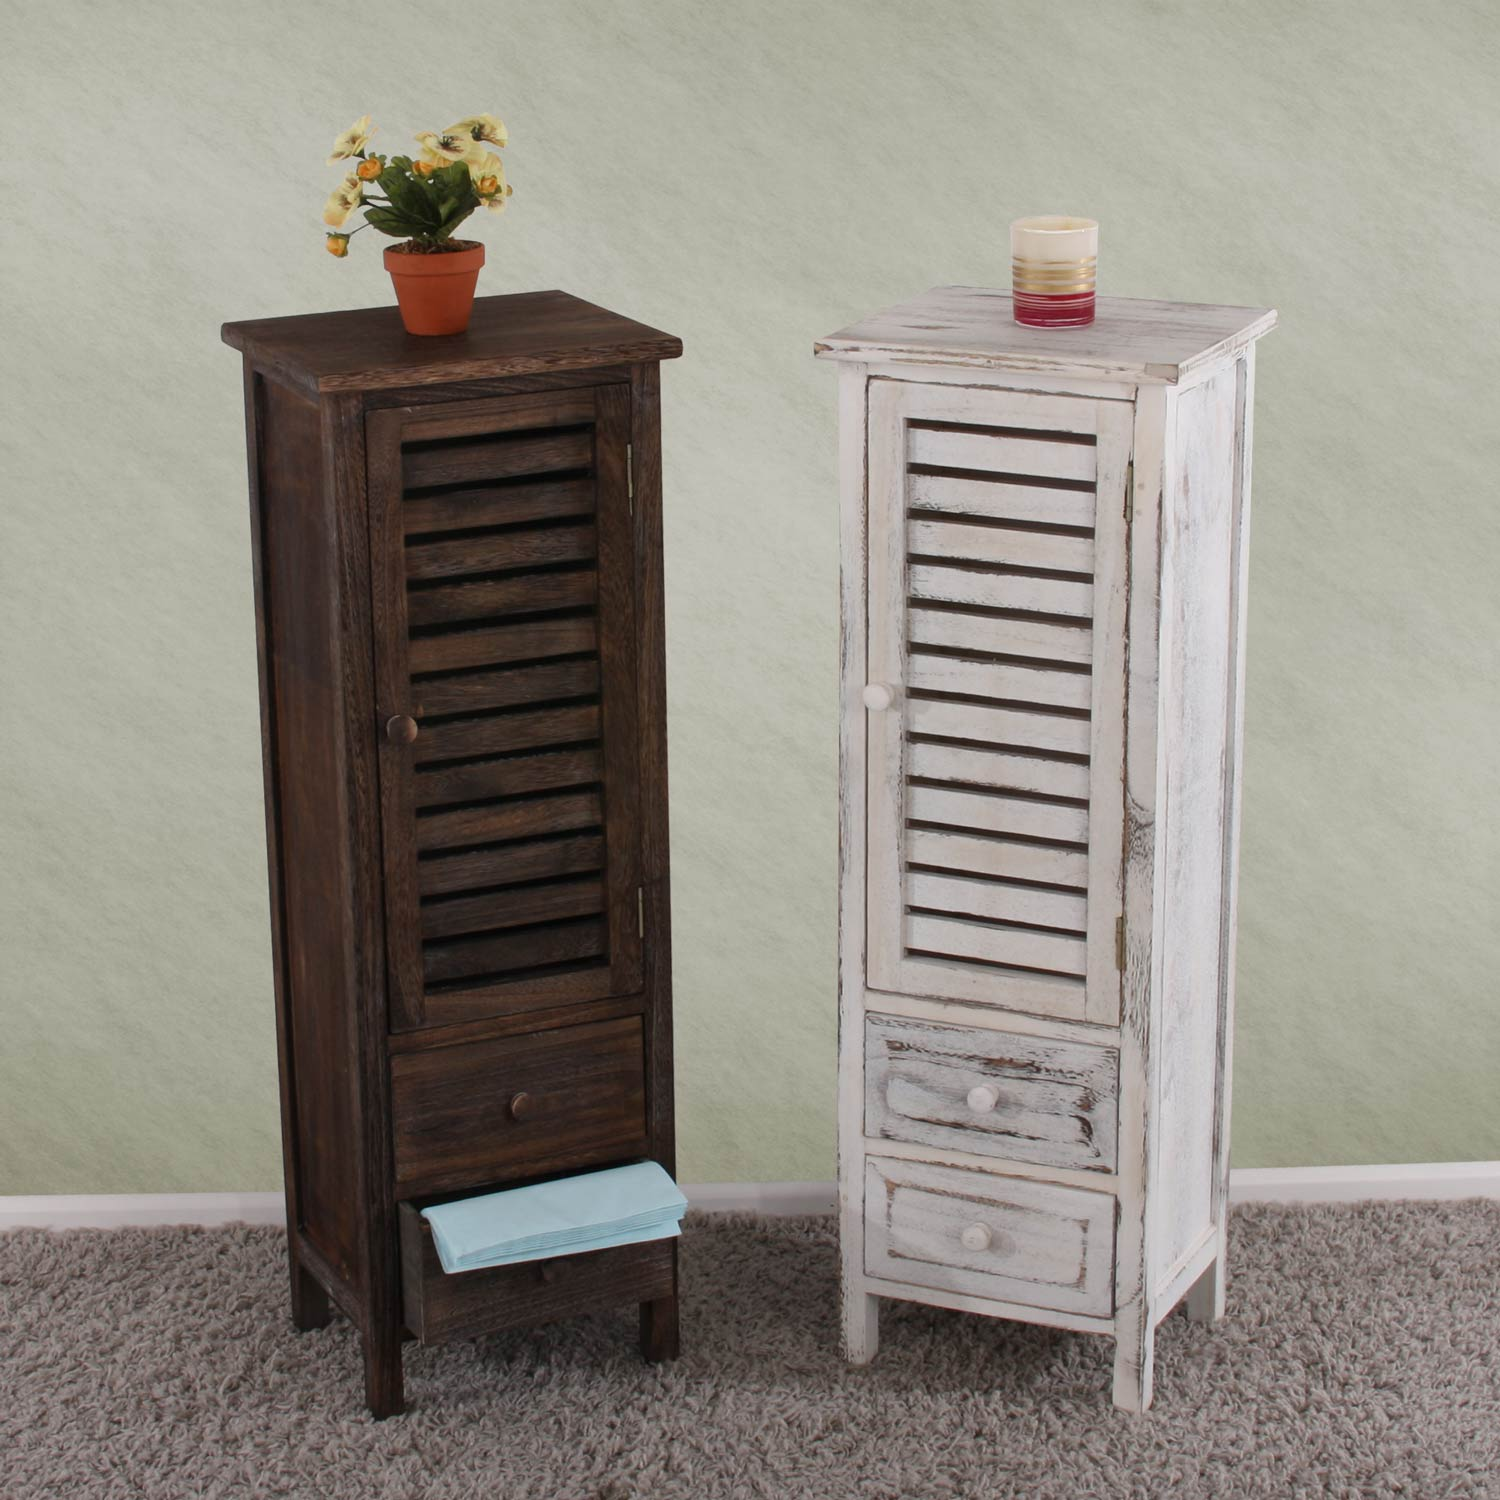 kommode schrank 90x30x25cm shabby look vintage wei. Black Bedroom Furniture Sets. Home Design Ideas